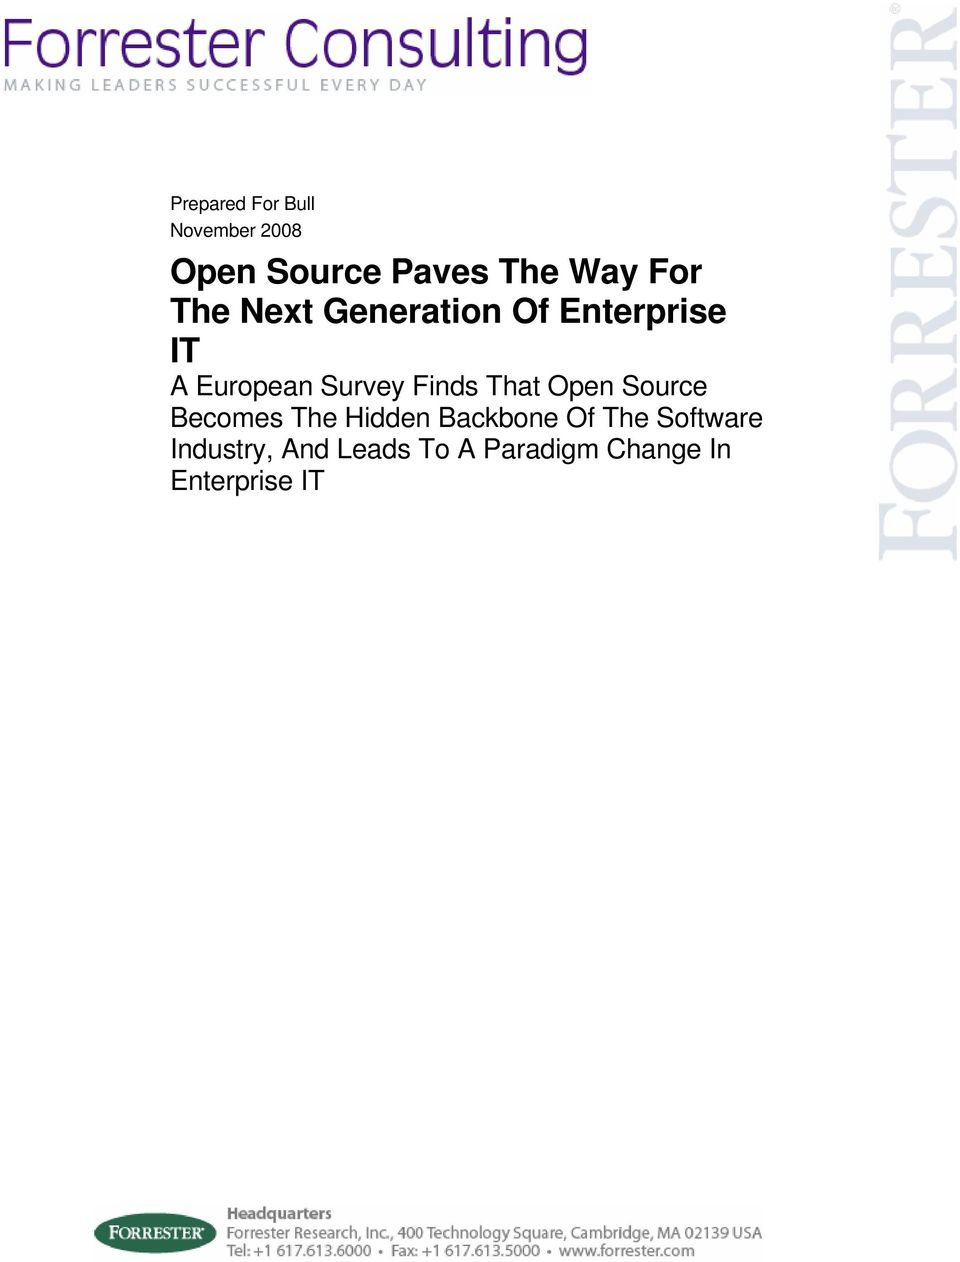 Finds That Open Source Becomes The Hidden Backbone Of The